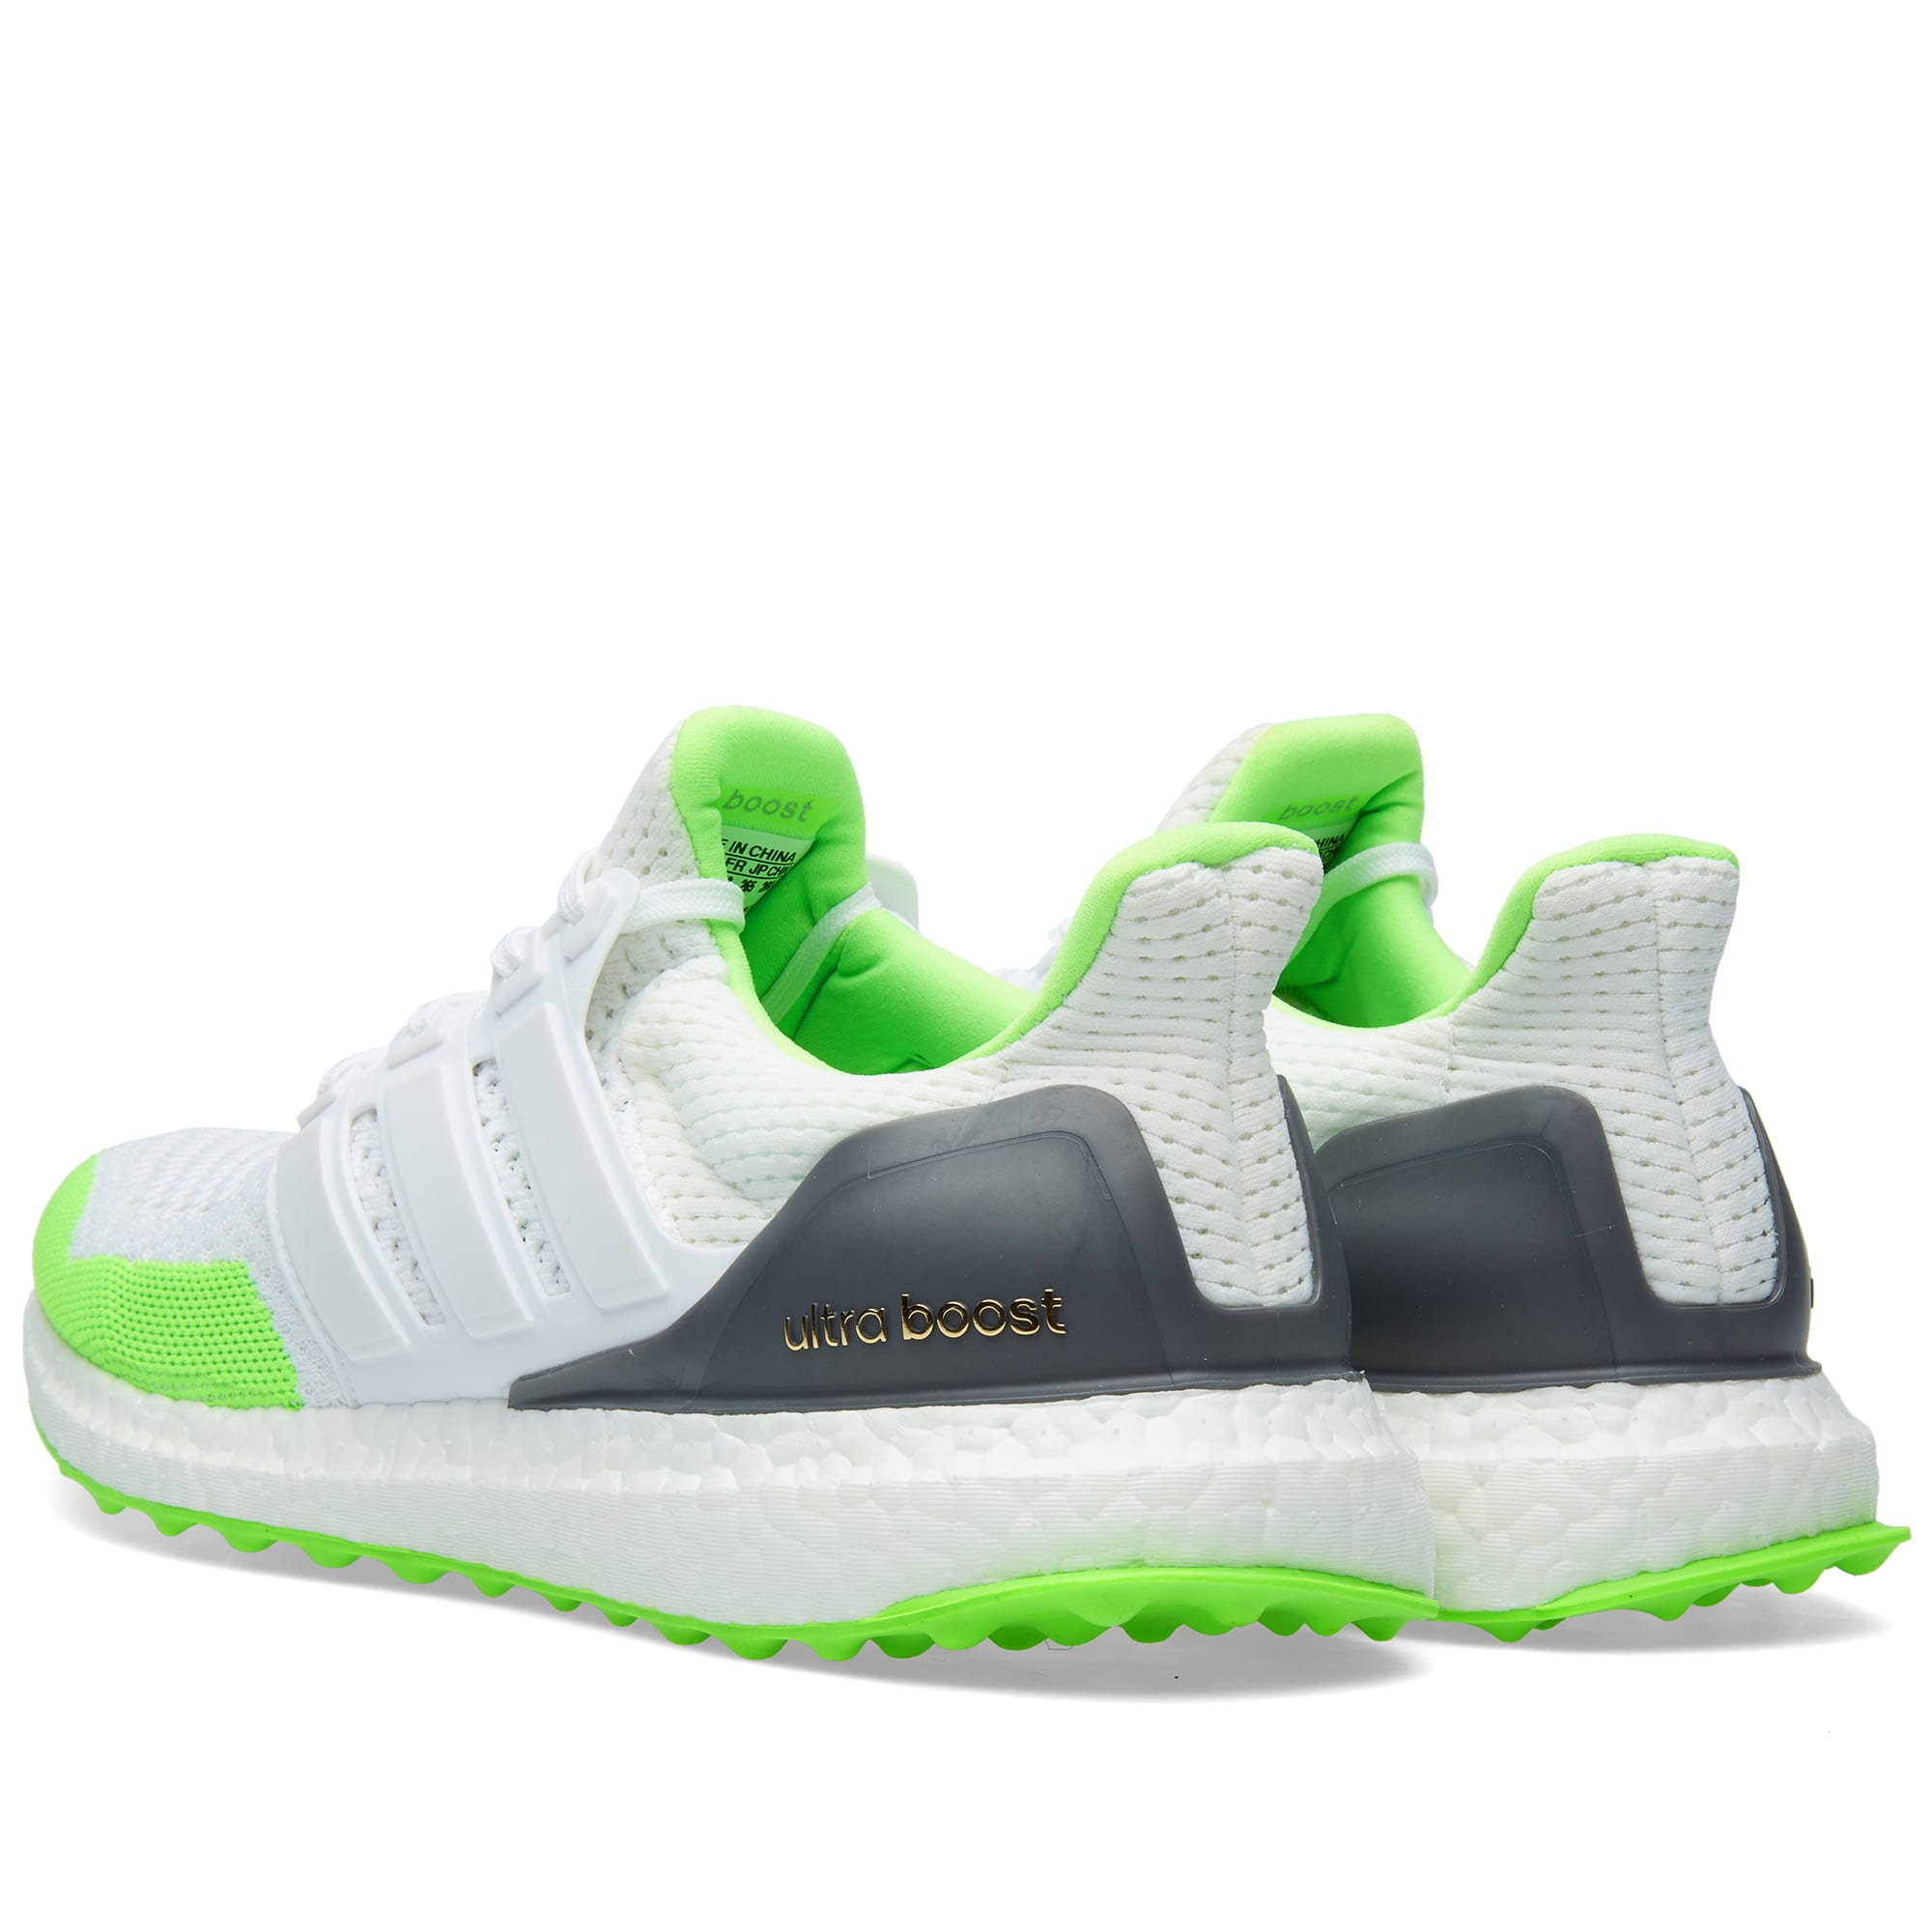 c6788b6c9 Adidas x Kolor Ultra Boost White   Solar Green